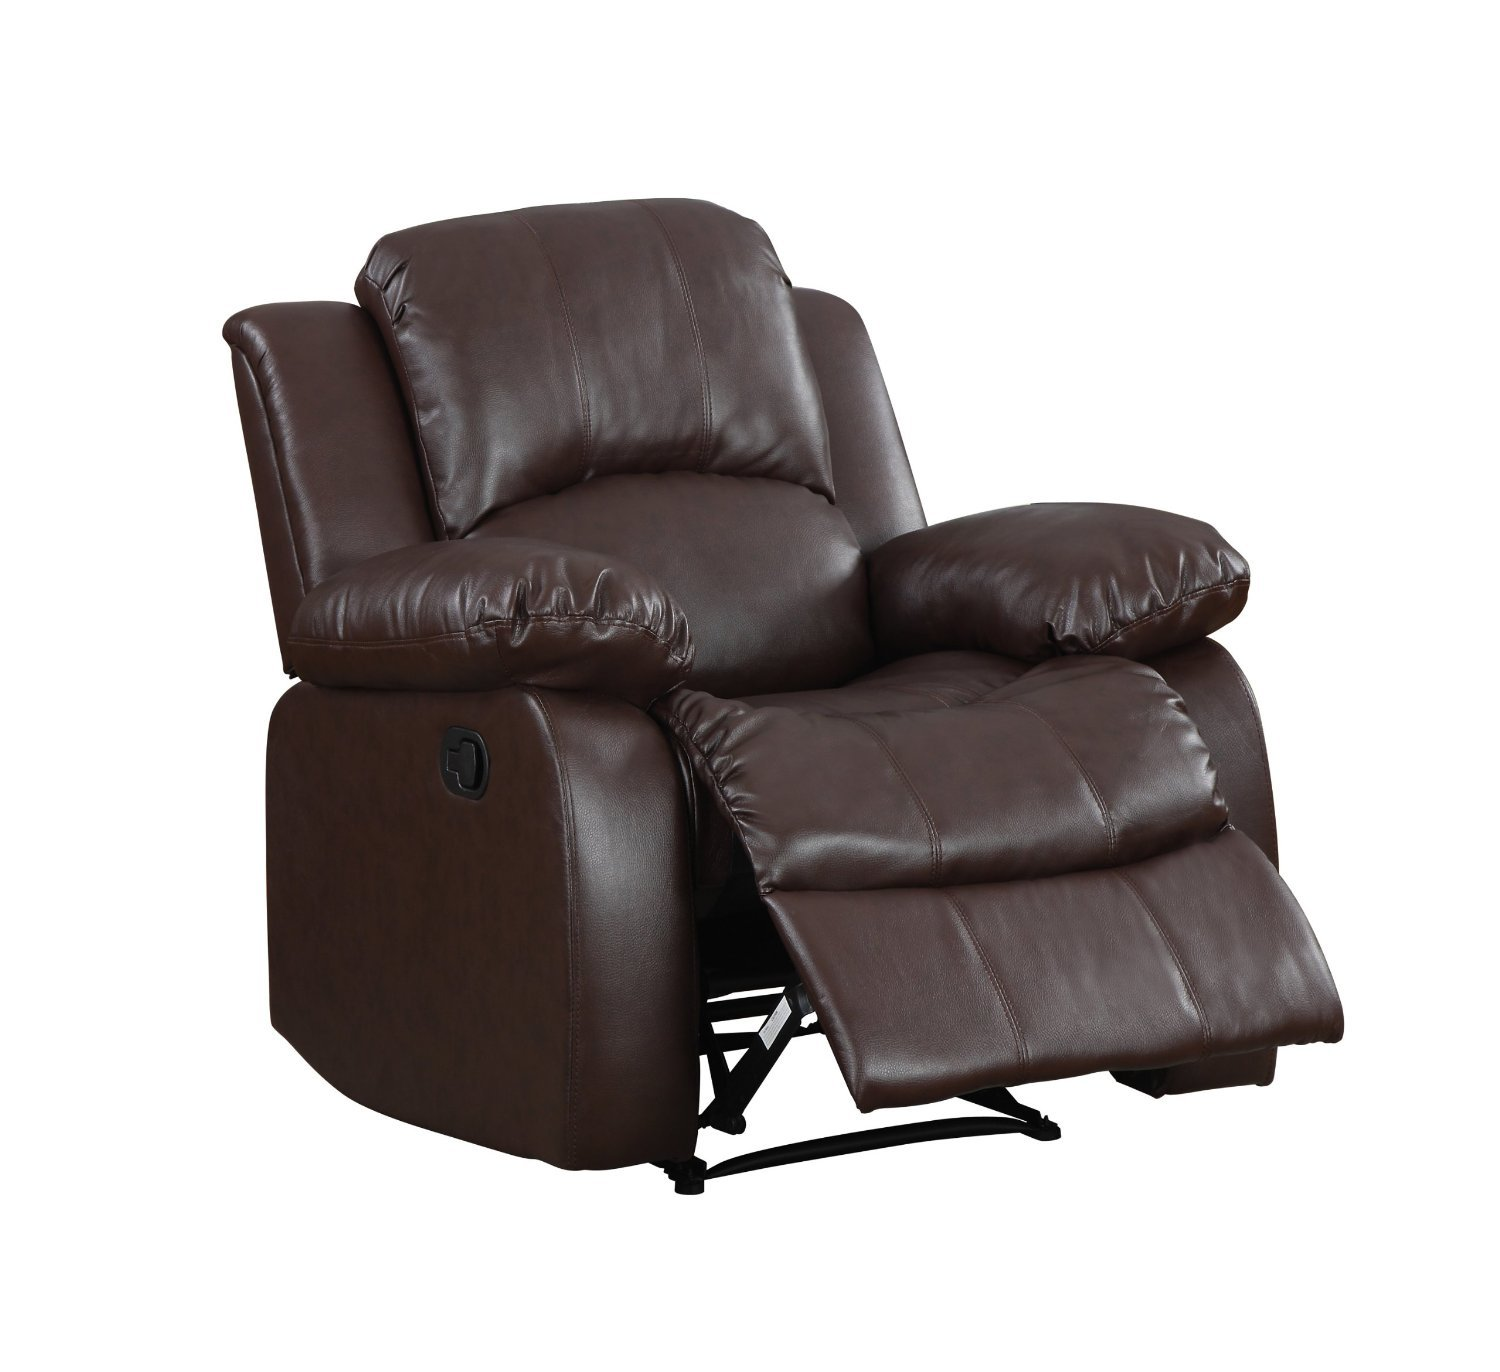 Amazon.com Divano Roma Furniture Classic Bonded Leather Recliner Chair Brown Kitchen u0026 Dining  sc 1 st  Amazon.com : brown leather recliner chairs - islam-shia.org